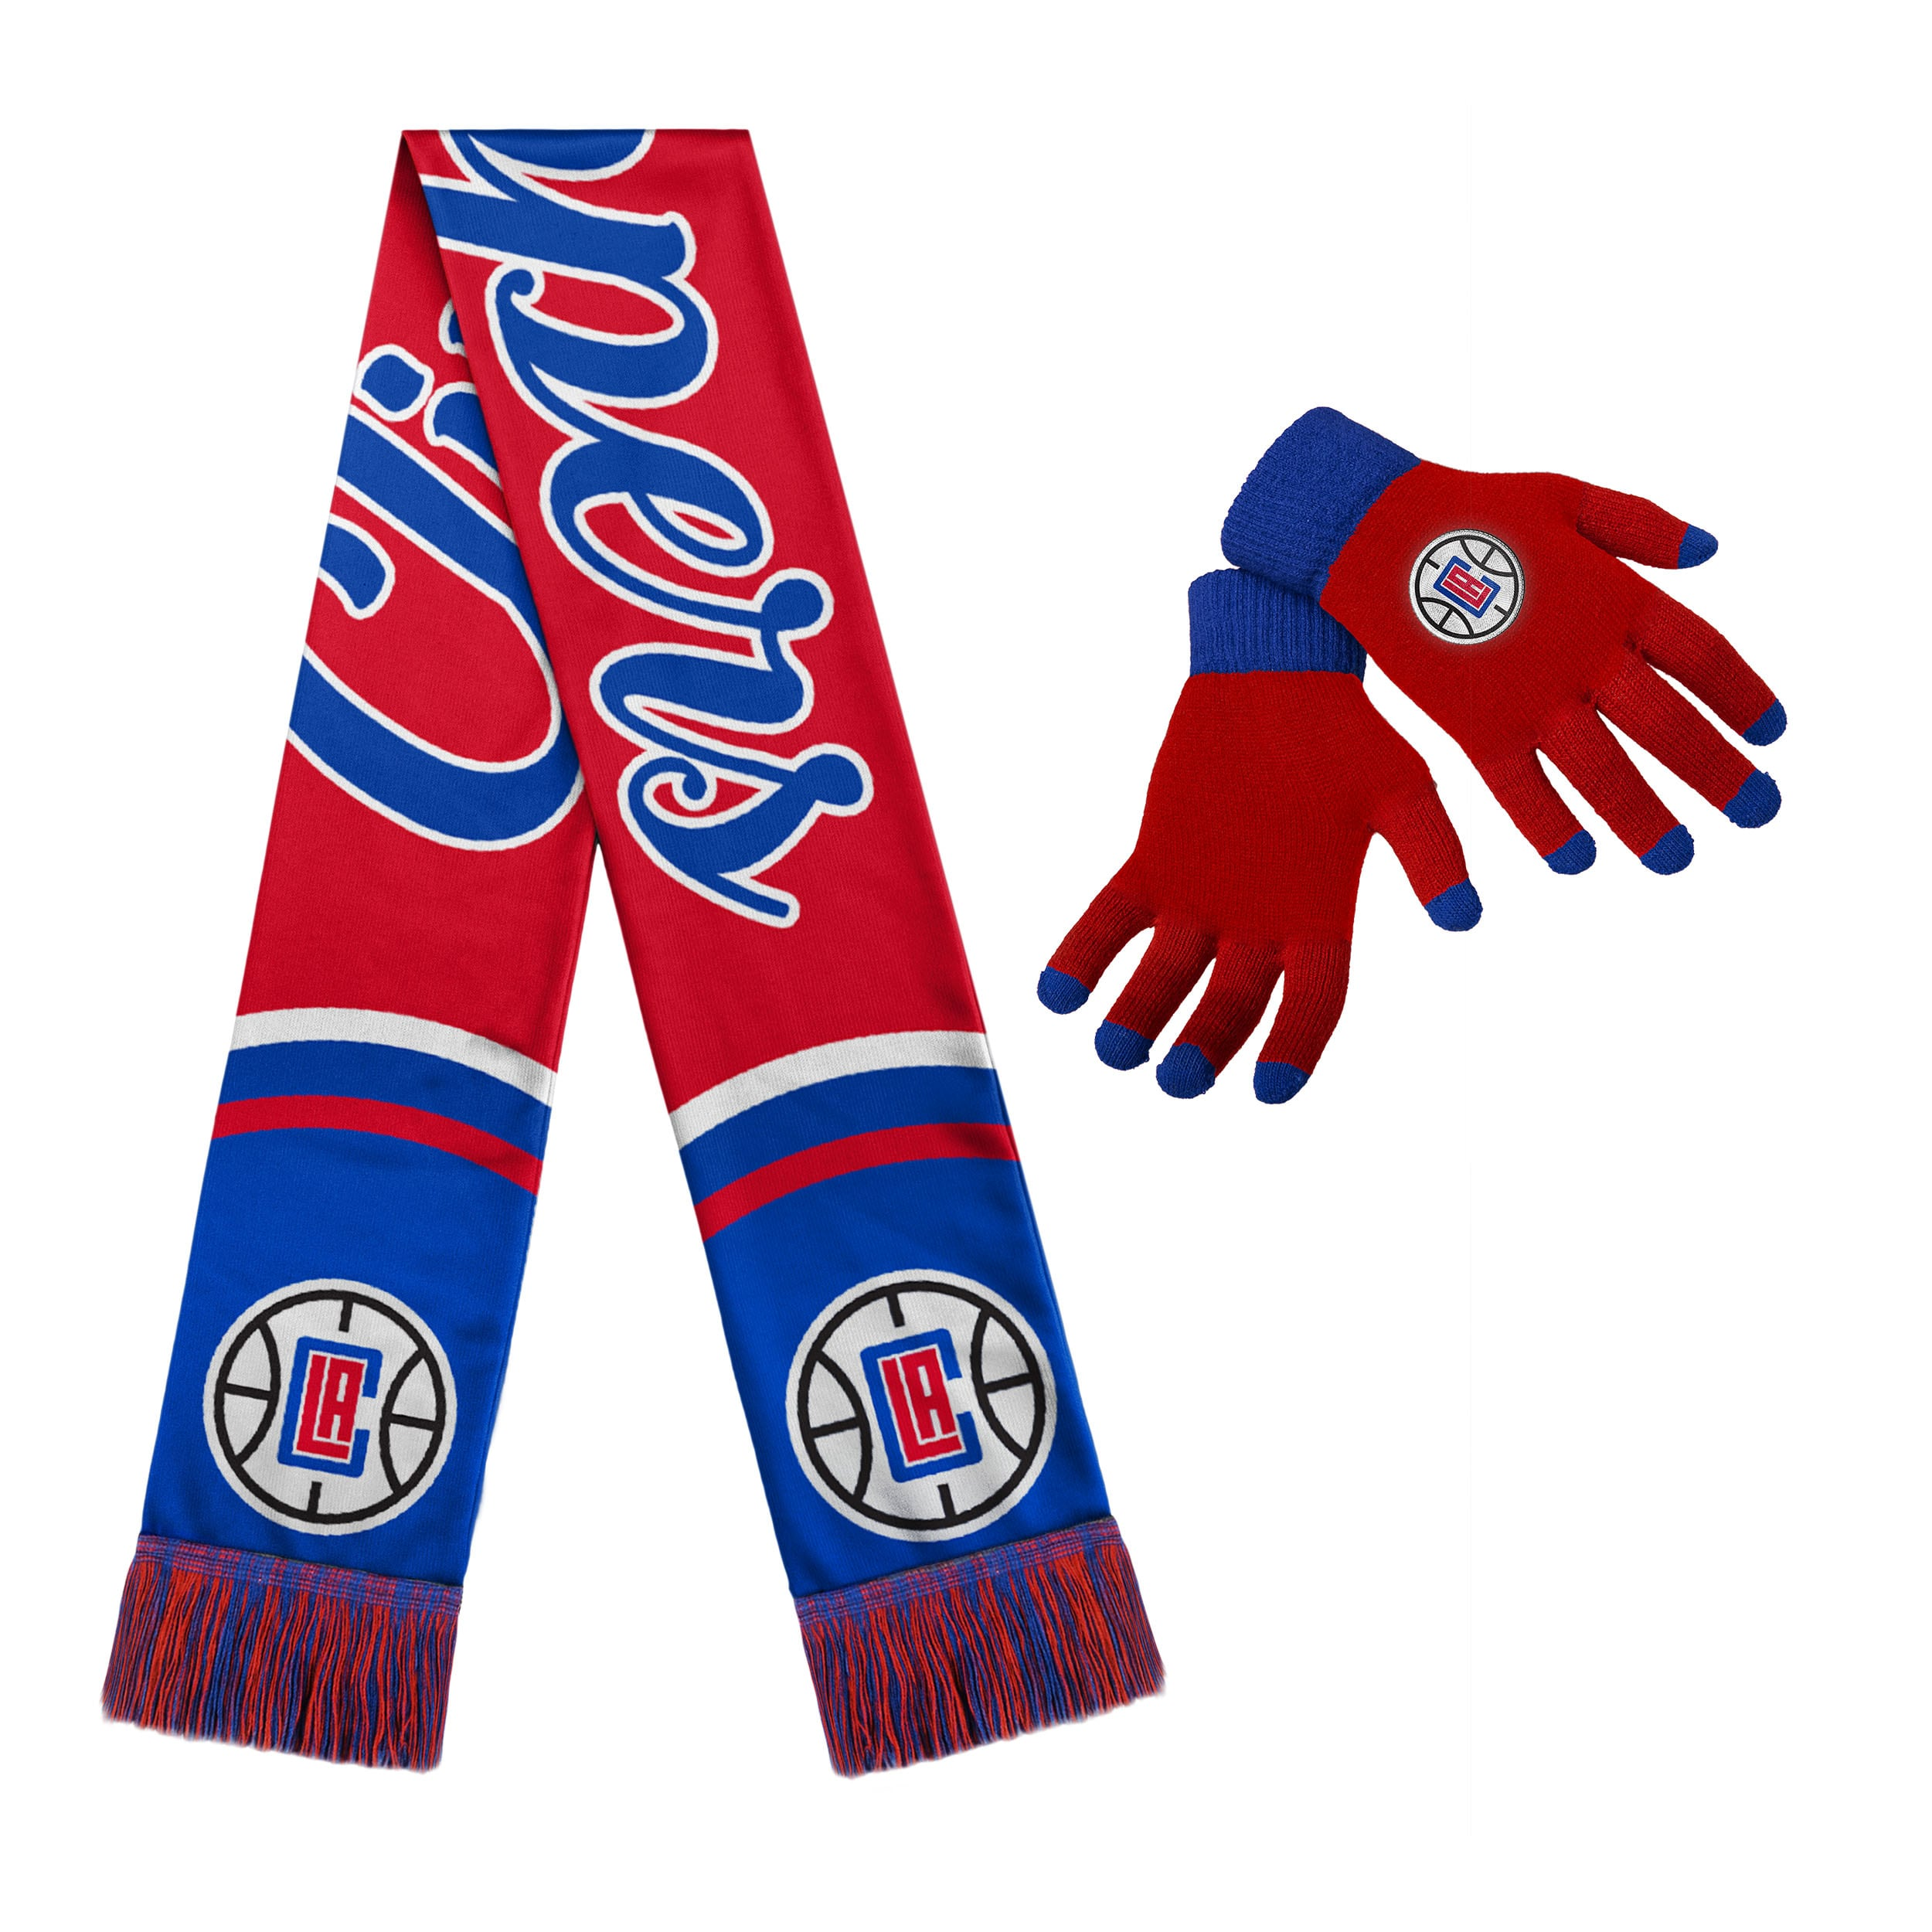 LA Clippers Women's Glove and Scarf Set